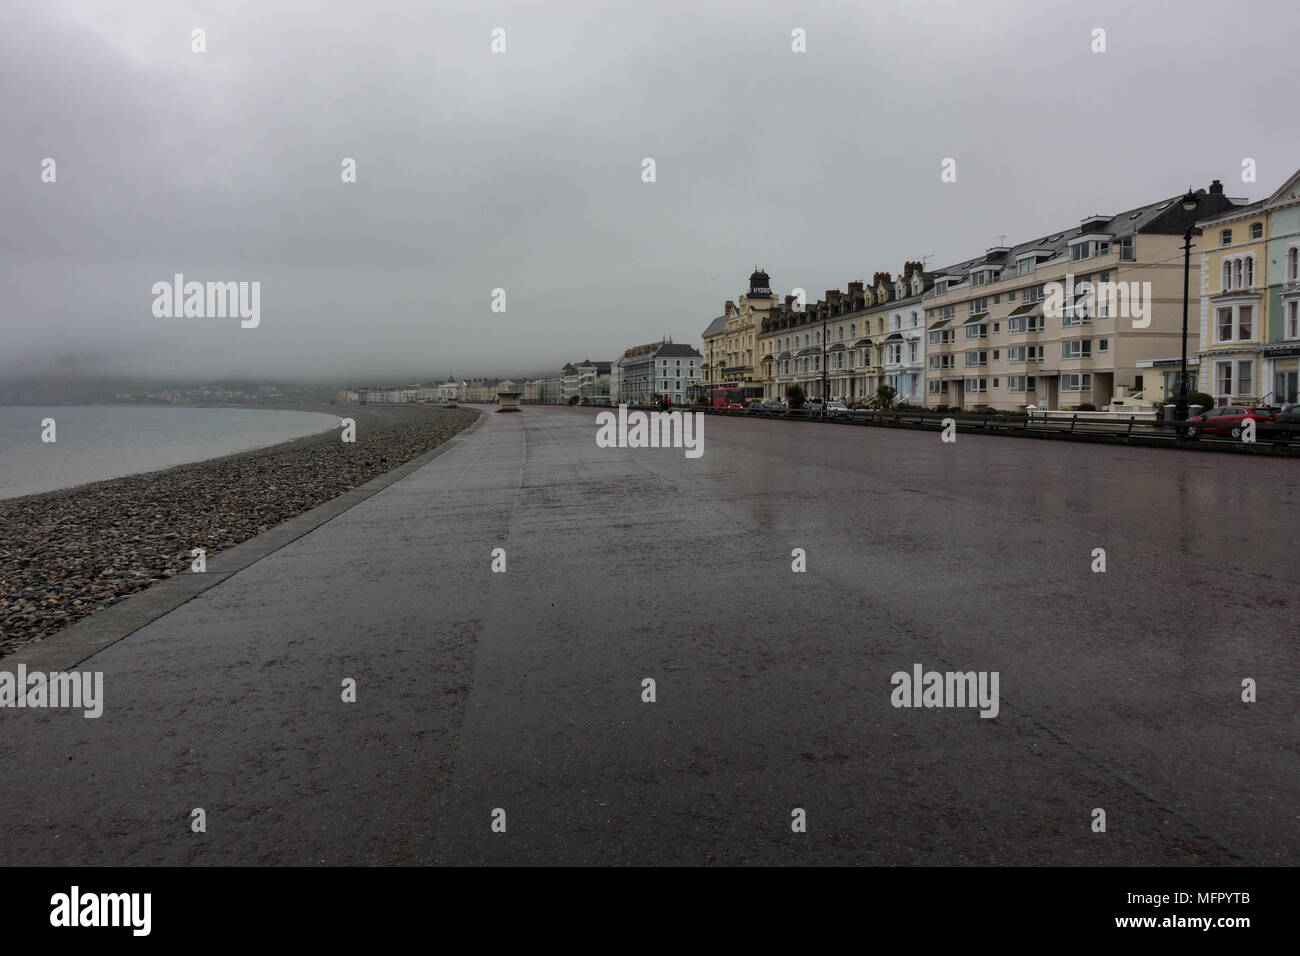 Lllandudno Promenade in the rain. April 2018. Wales - Stock Image